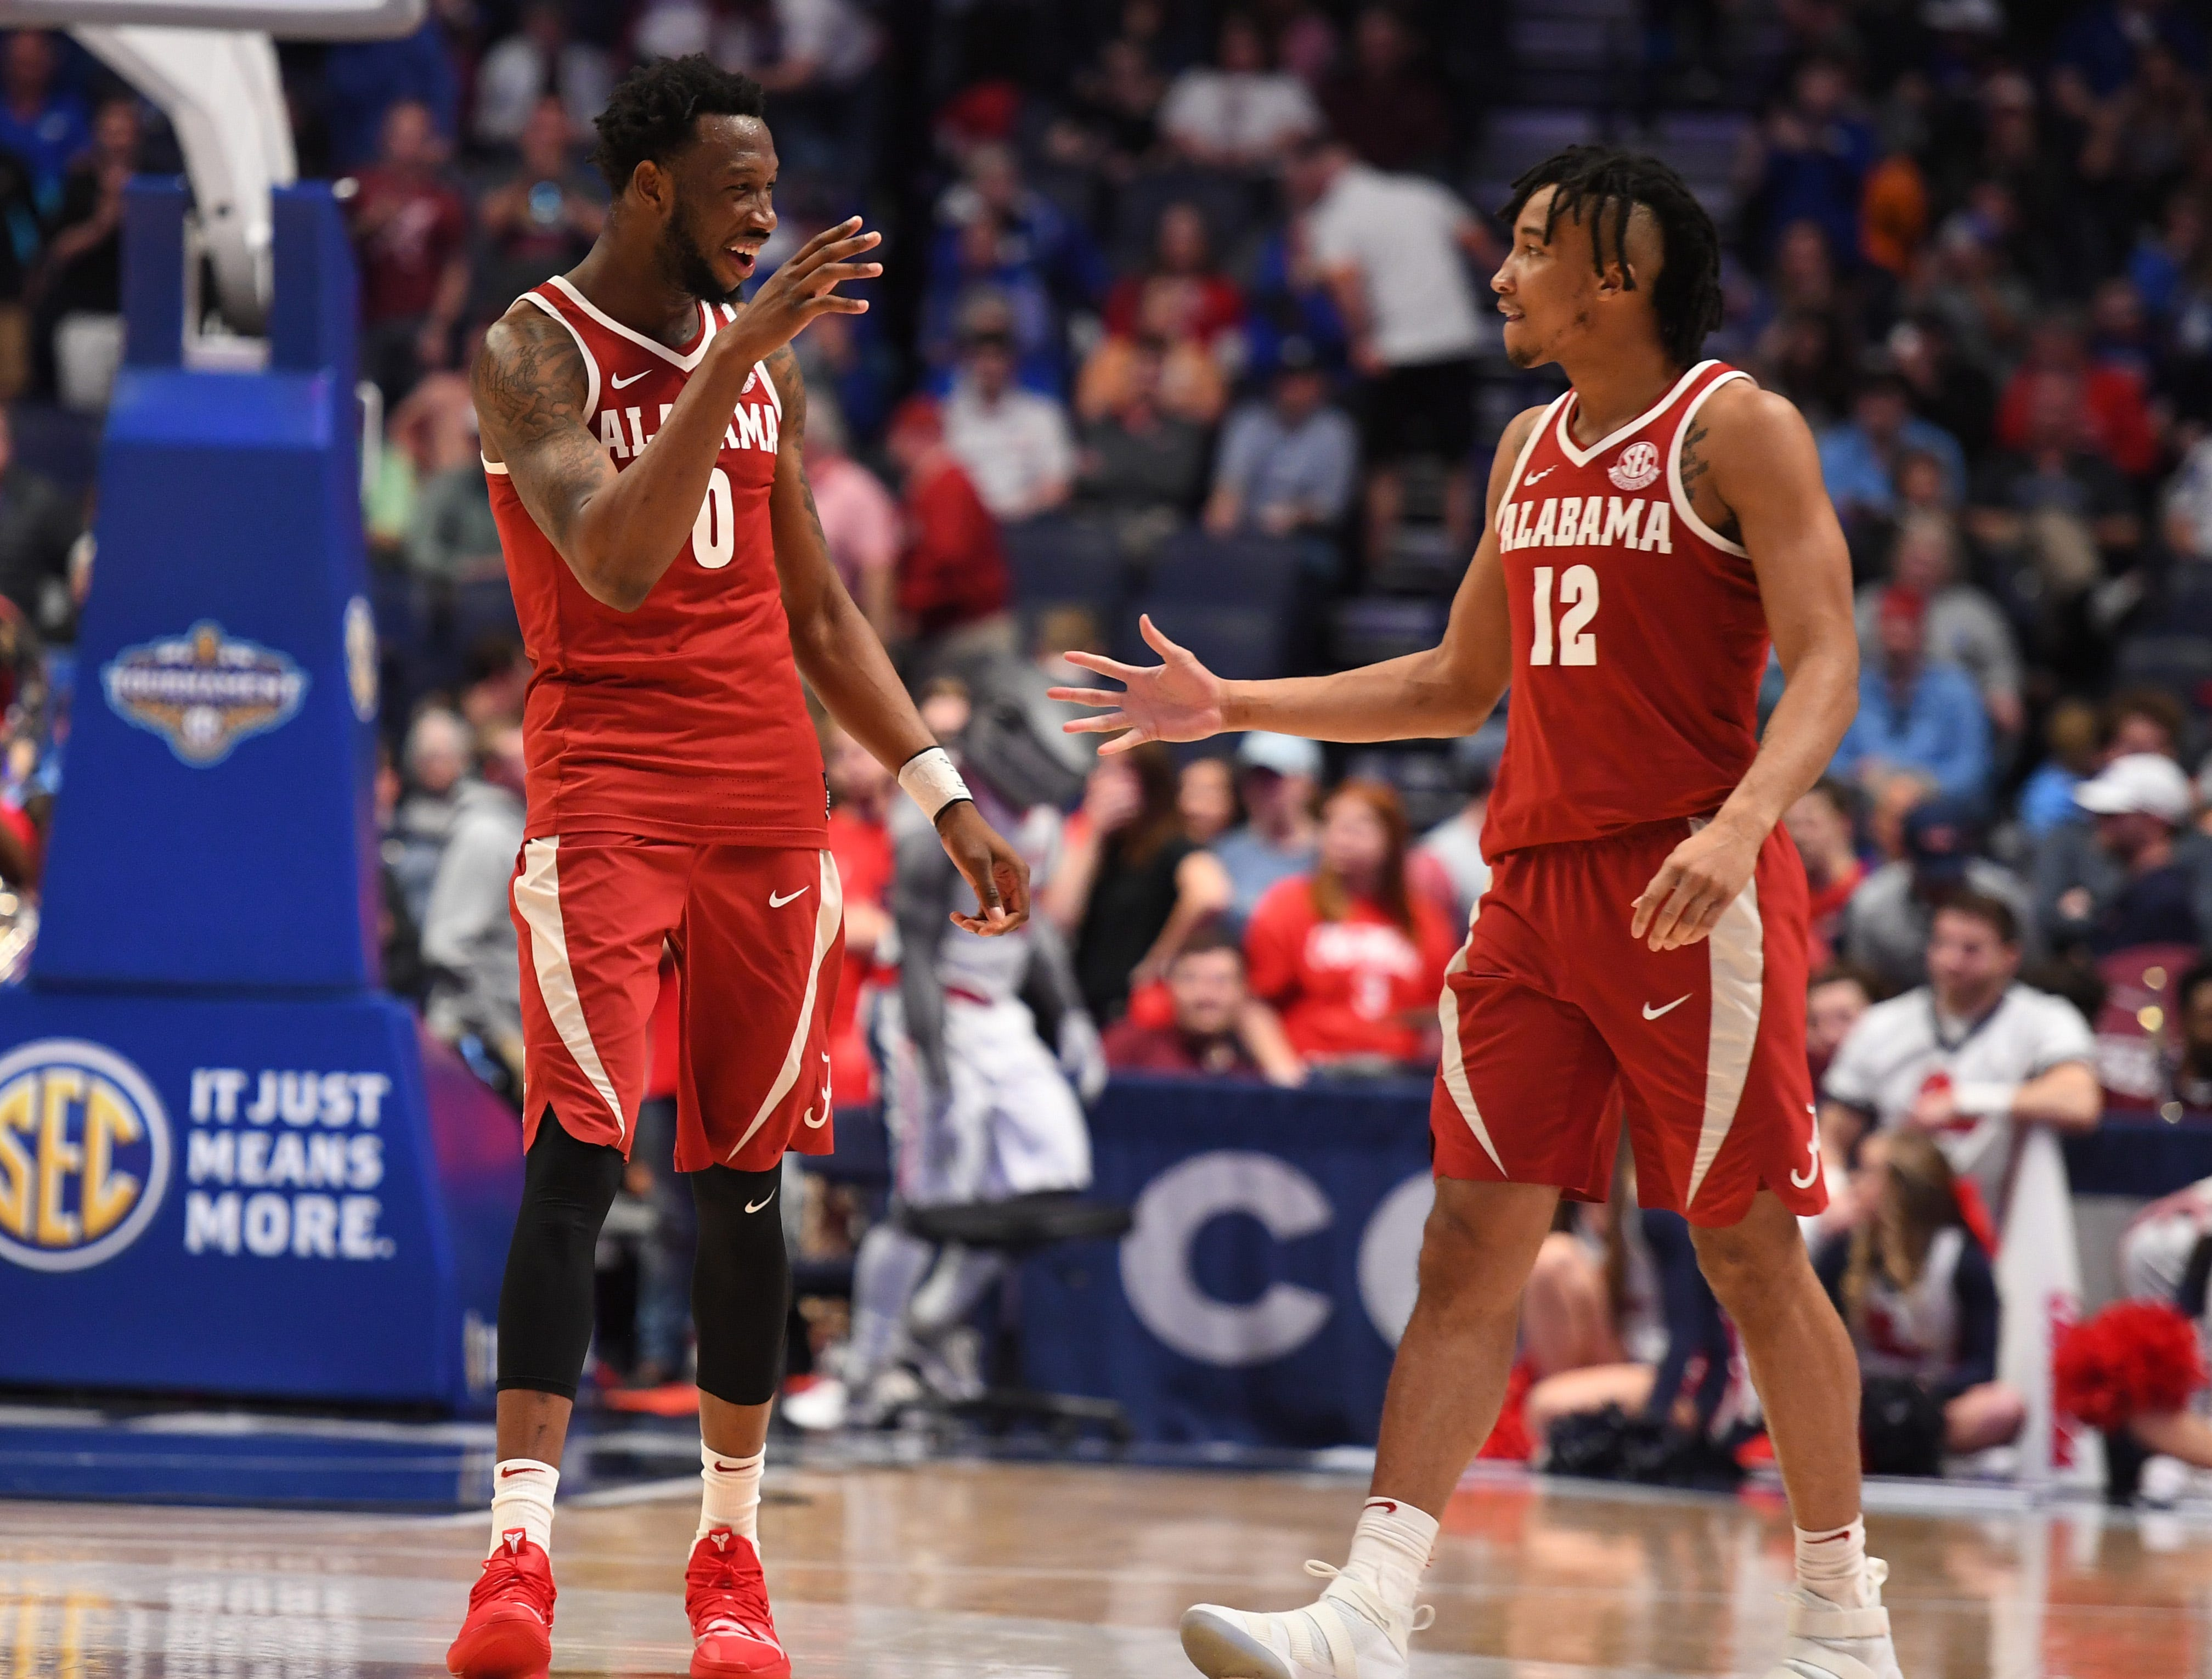 Mar 14, 2019; Nashville, TN, USA; Alabama Crimson Tide forward Donta Hall (0) and Alabama Crimson Tide guard Dazon Ingram (12)celebrate after a win against the Mississippi Rebels in the SEC conference tournament at Bridgestone Arena. Mandatory Credit: Christopher Hanewinckel-USA TODAY Sports